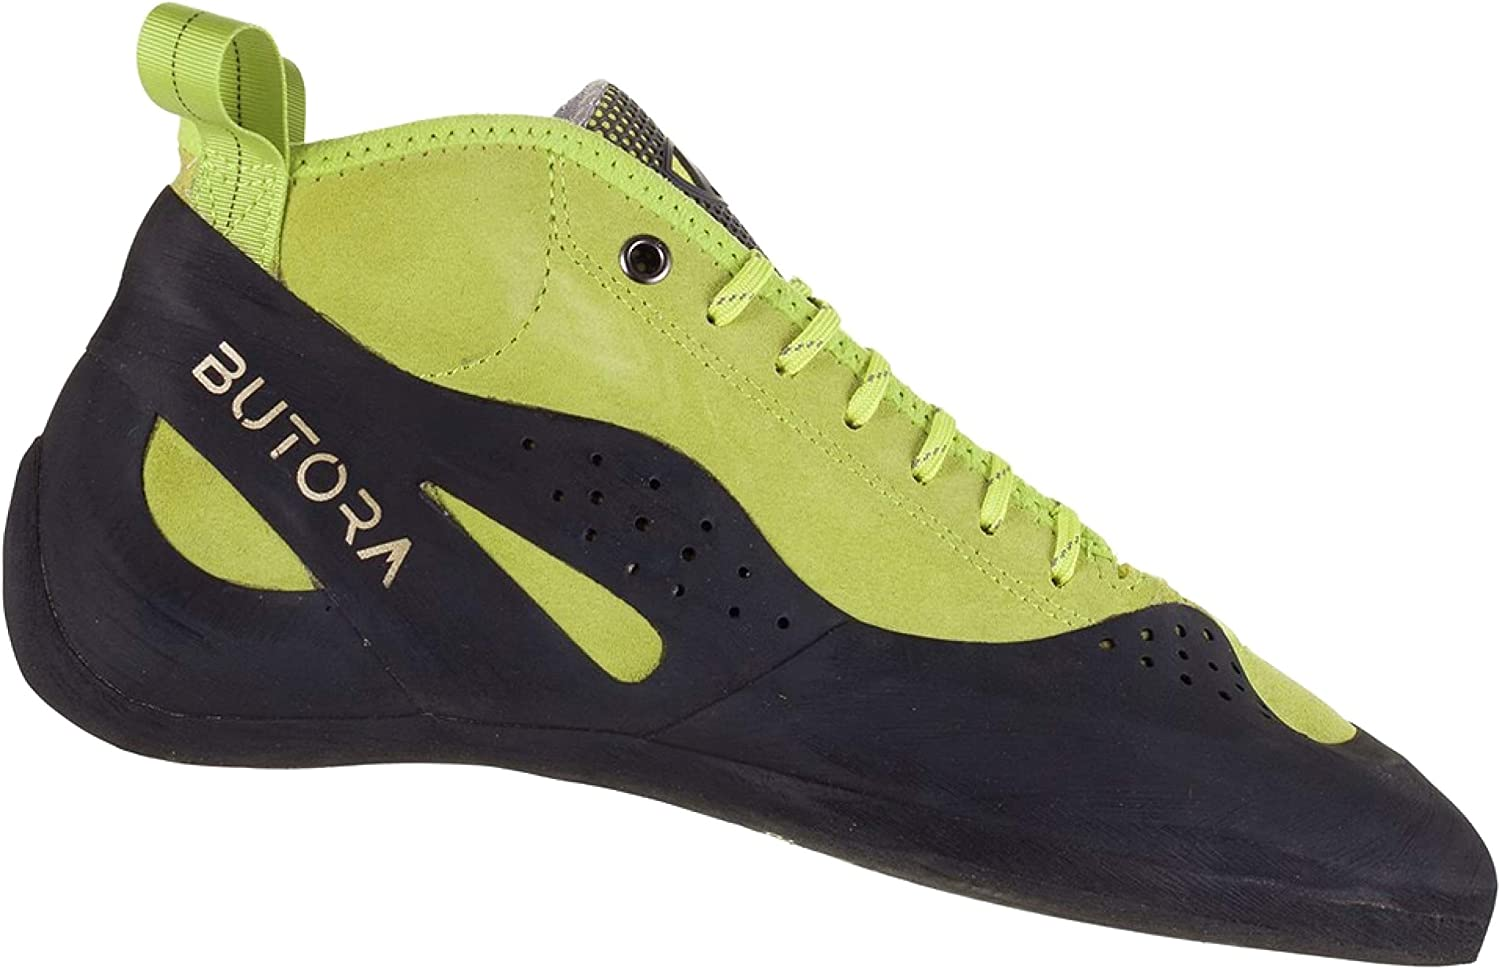 BUTORA Unisex Altura Shoe Climbing Limited time San Francisco Mall for free shipping